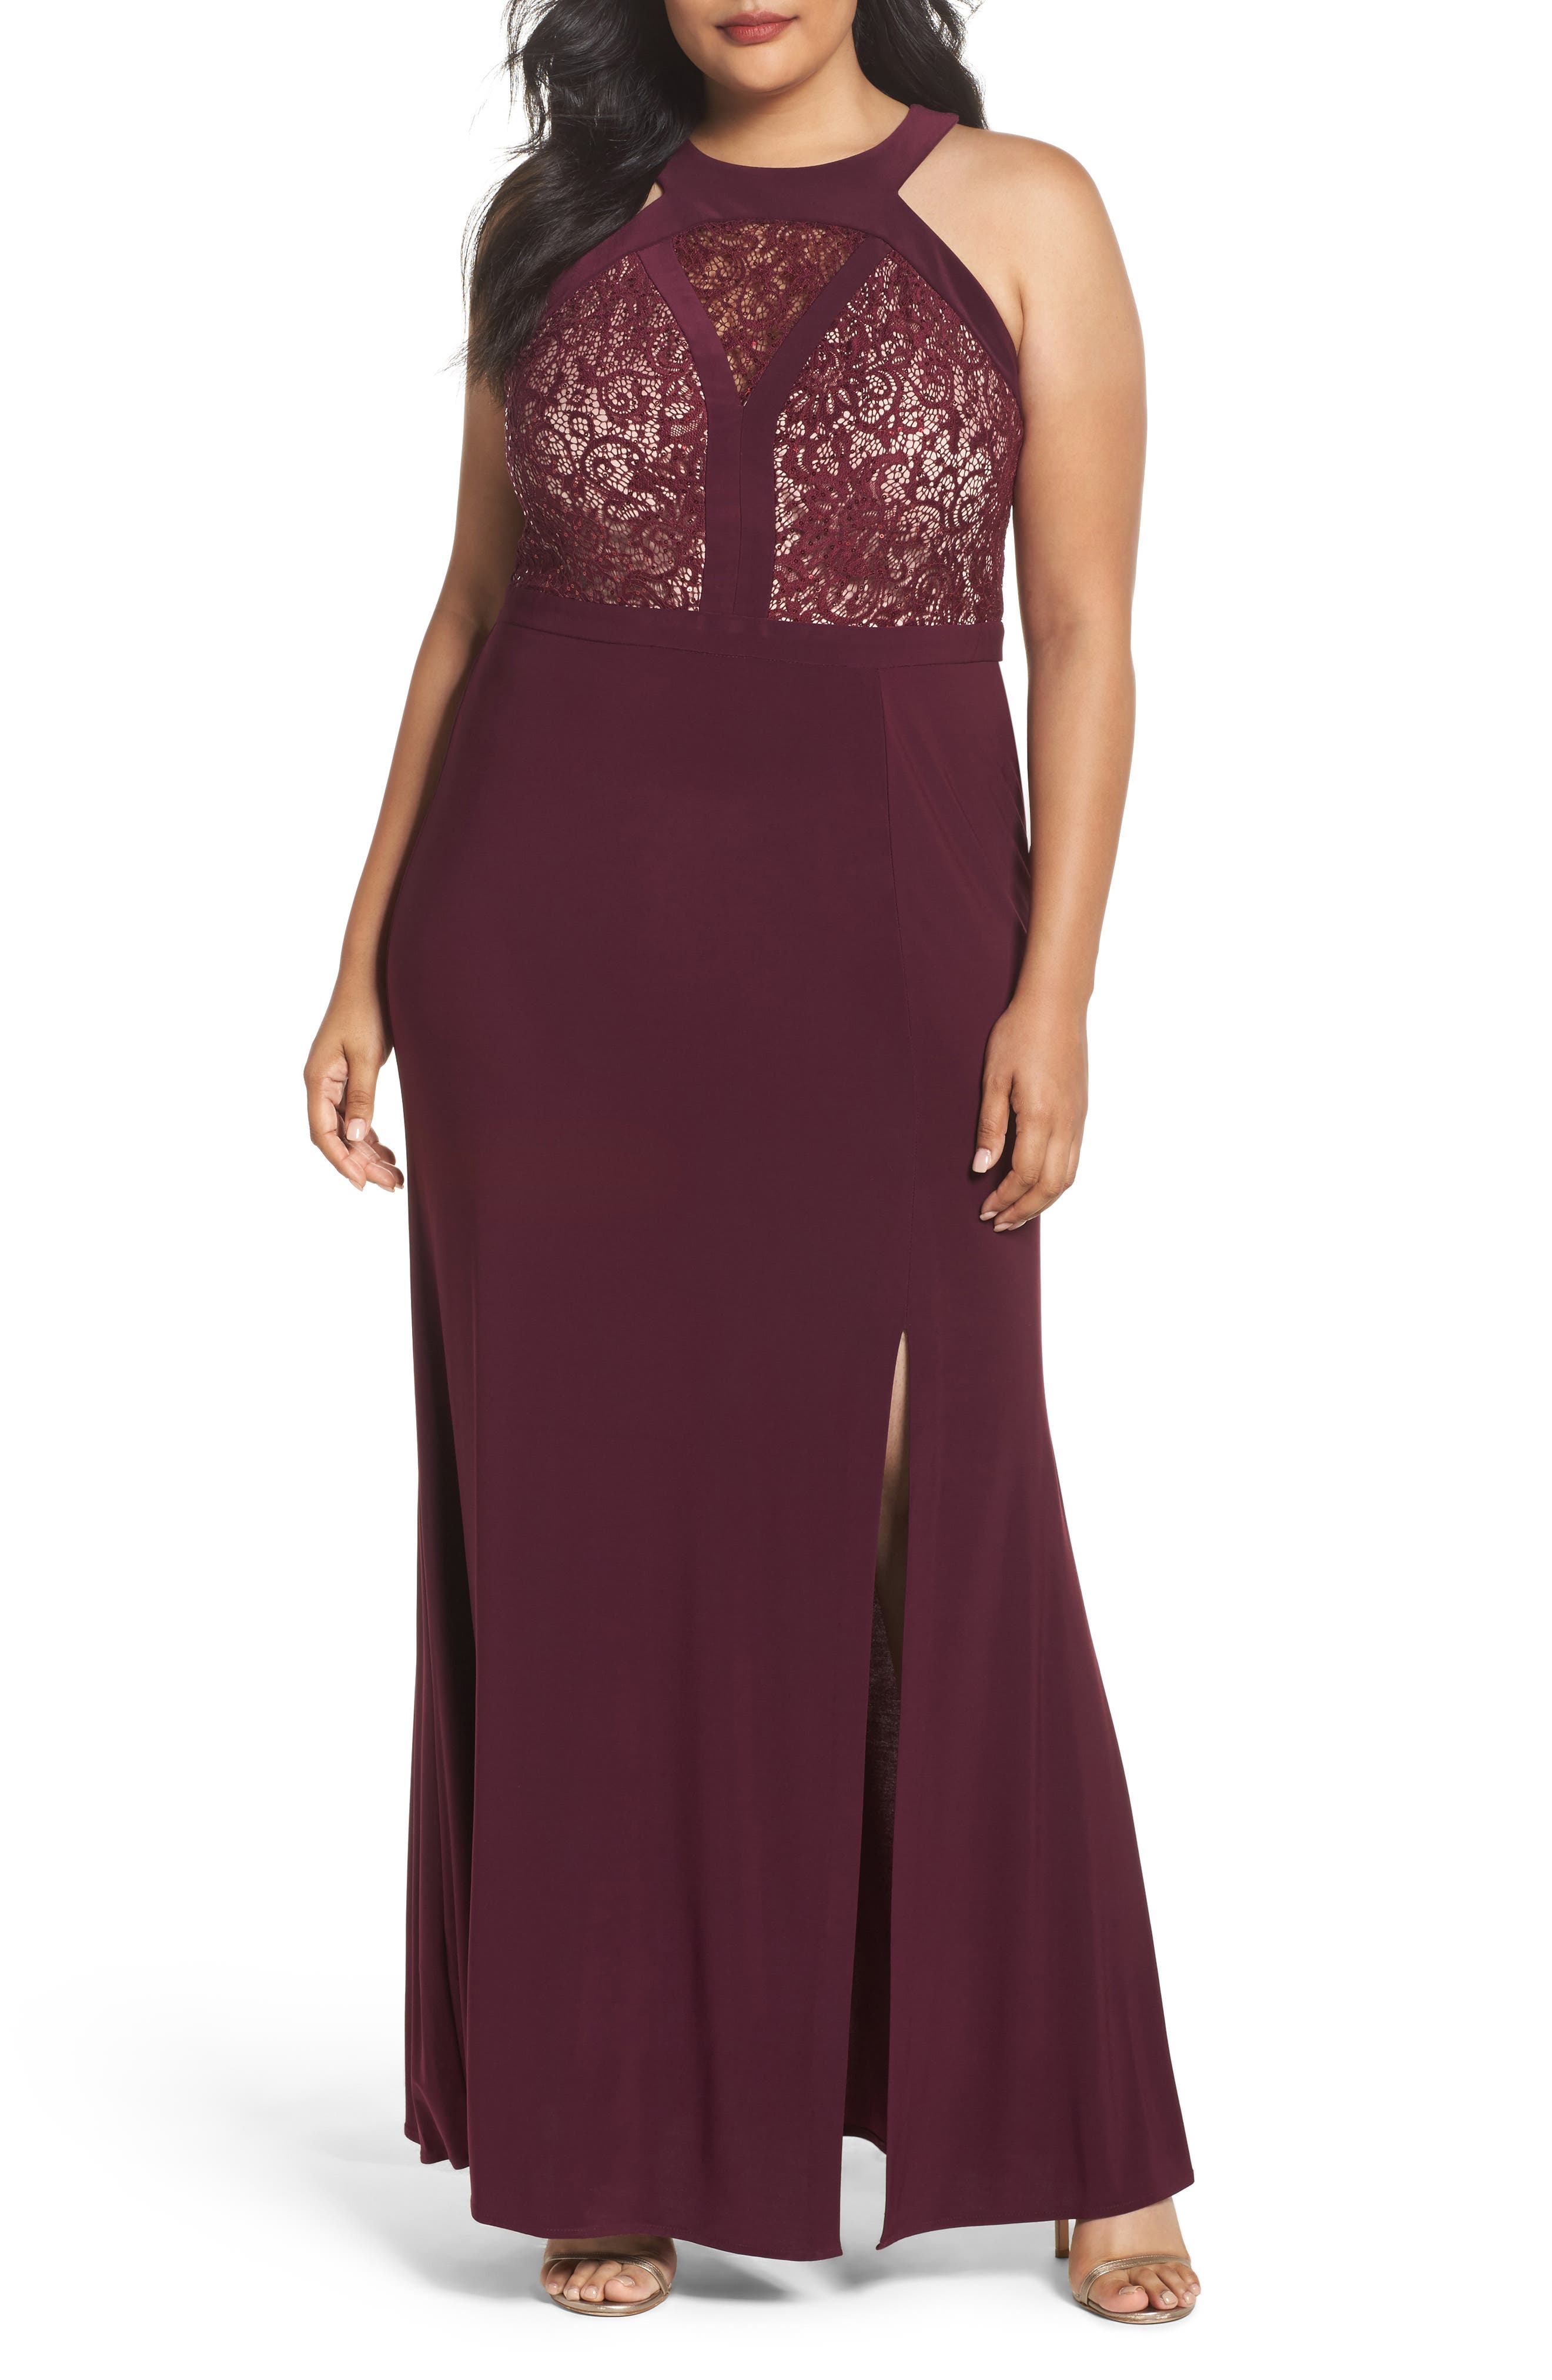 Alternate Image 1 Selected - Morgan & Co. Lace Bodice Dress (Plus Size)